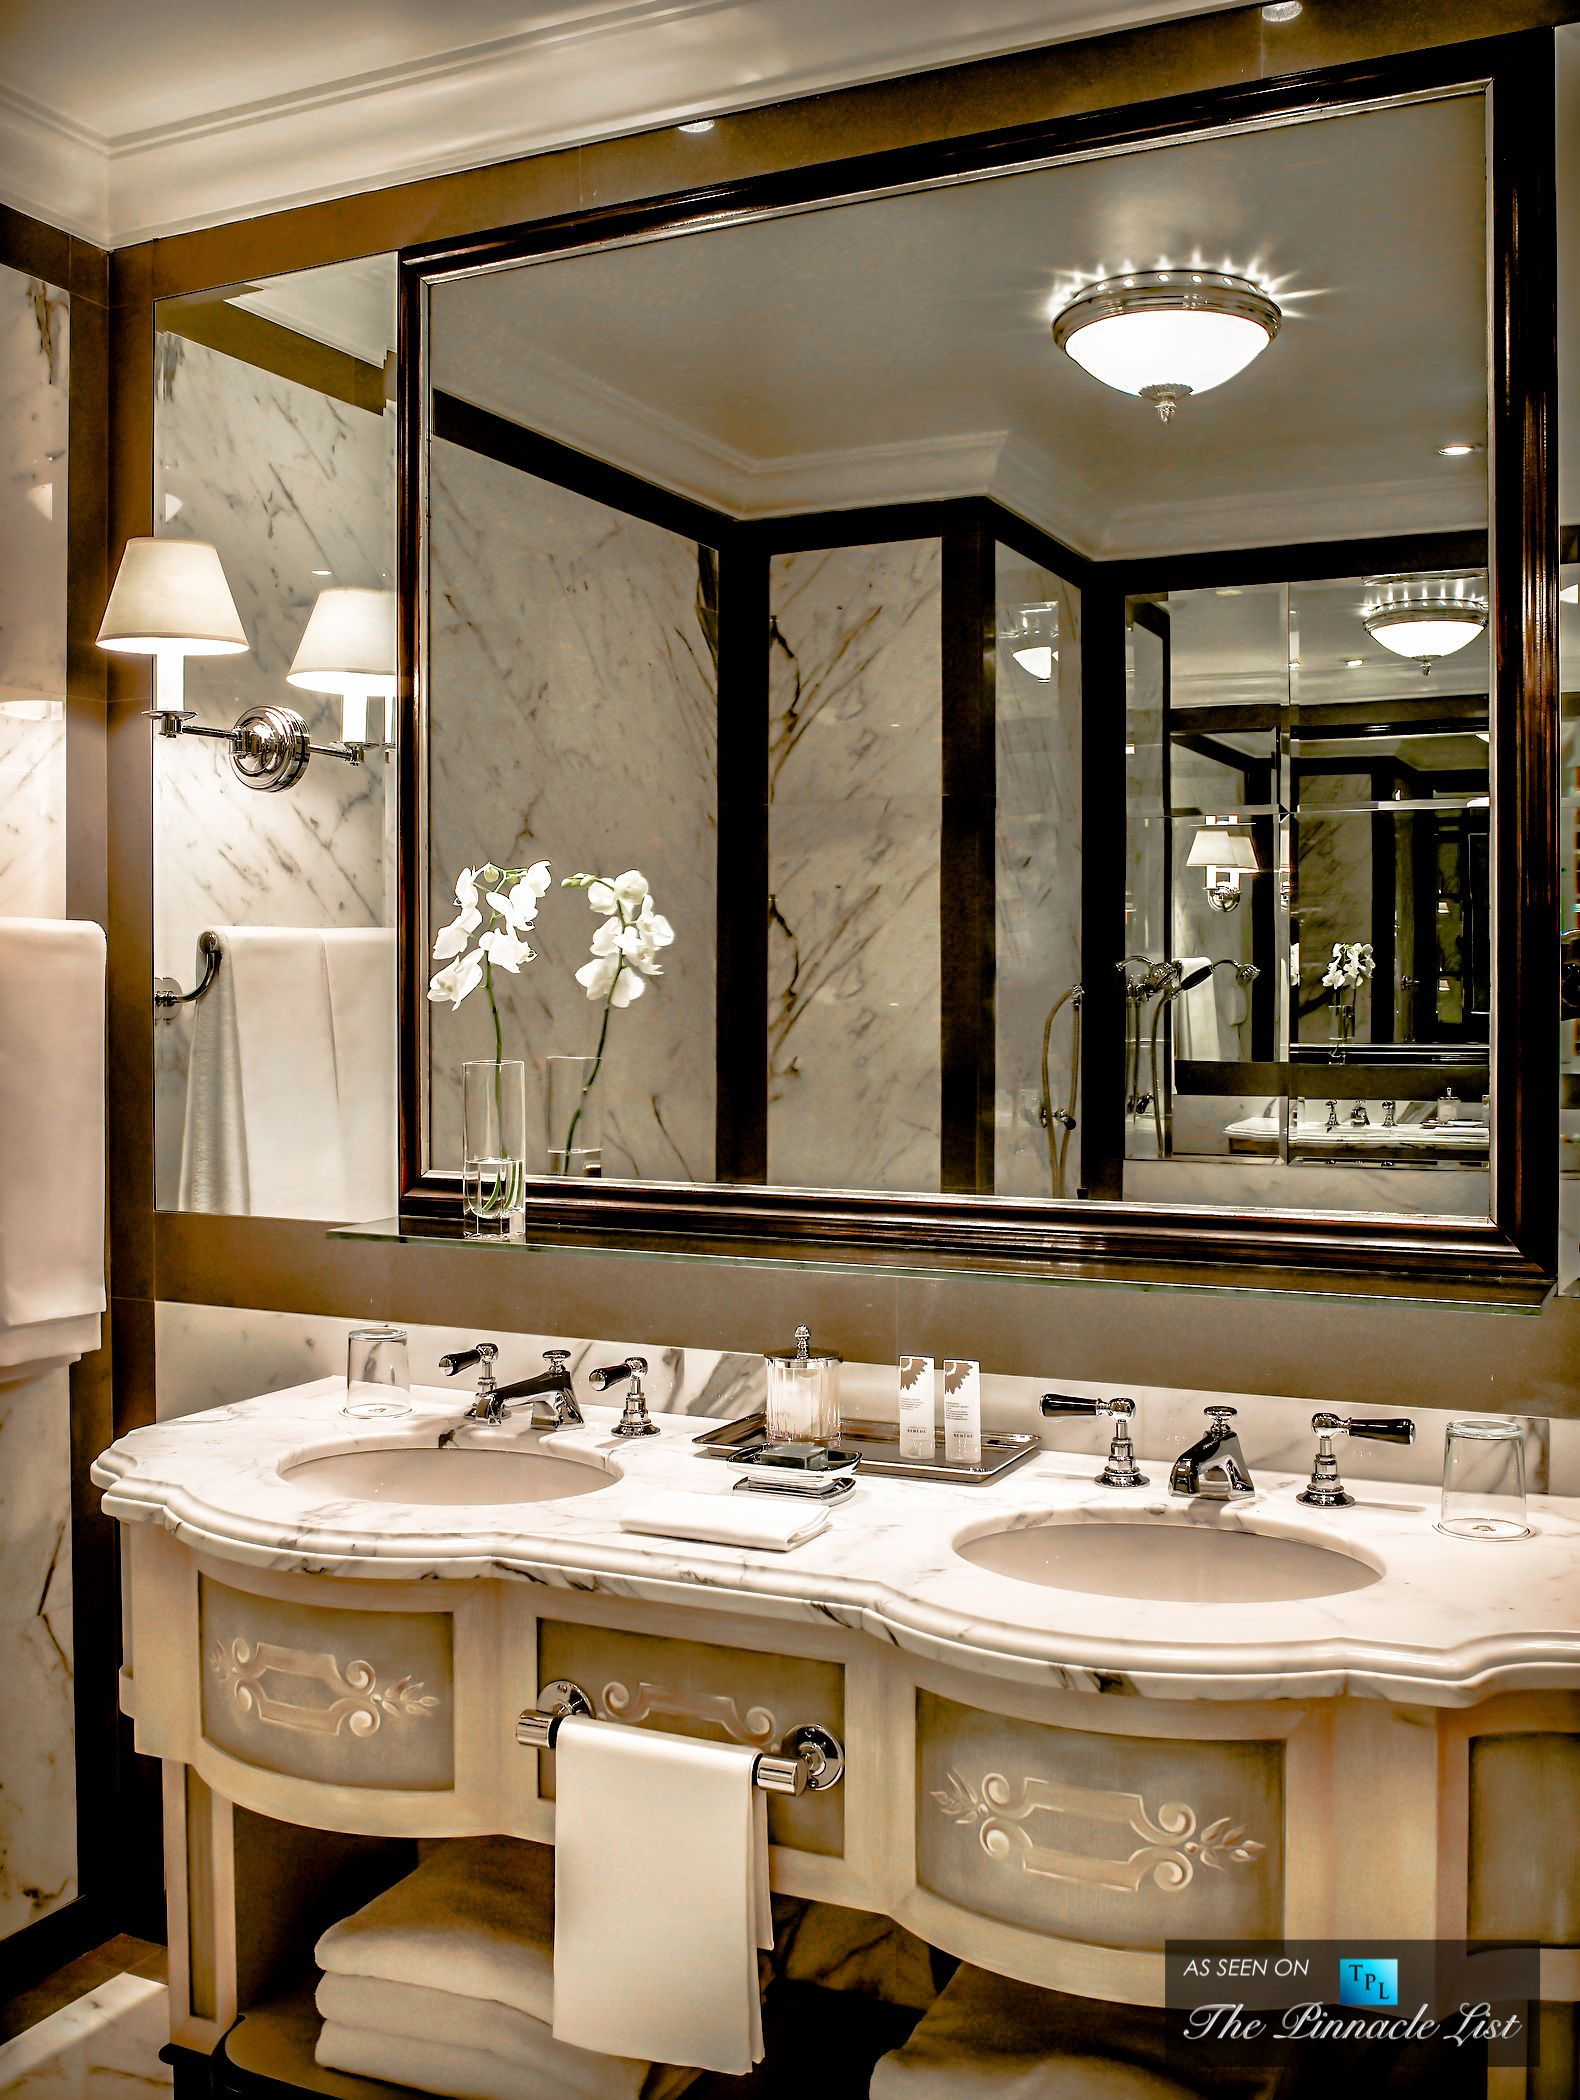 St regis luxury hotel florence italy bathroom with for Design hotel florence italy